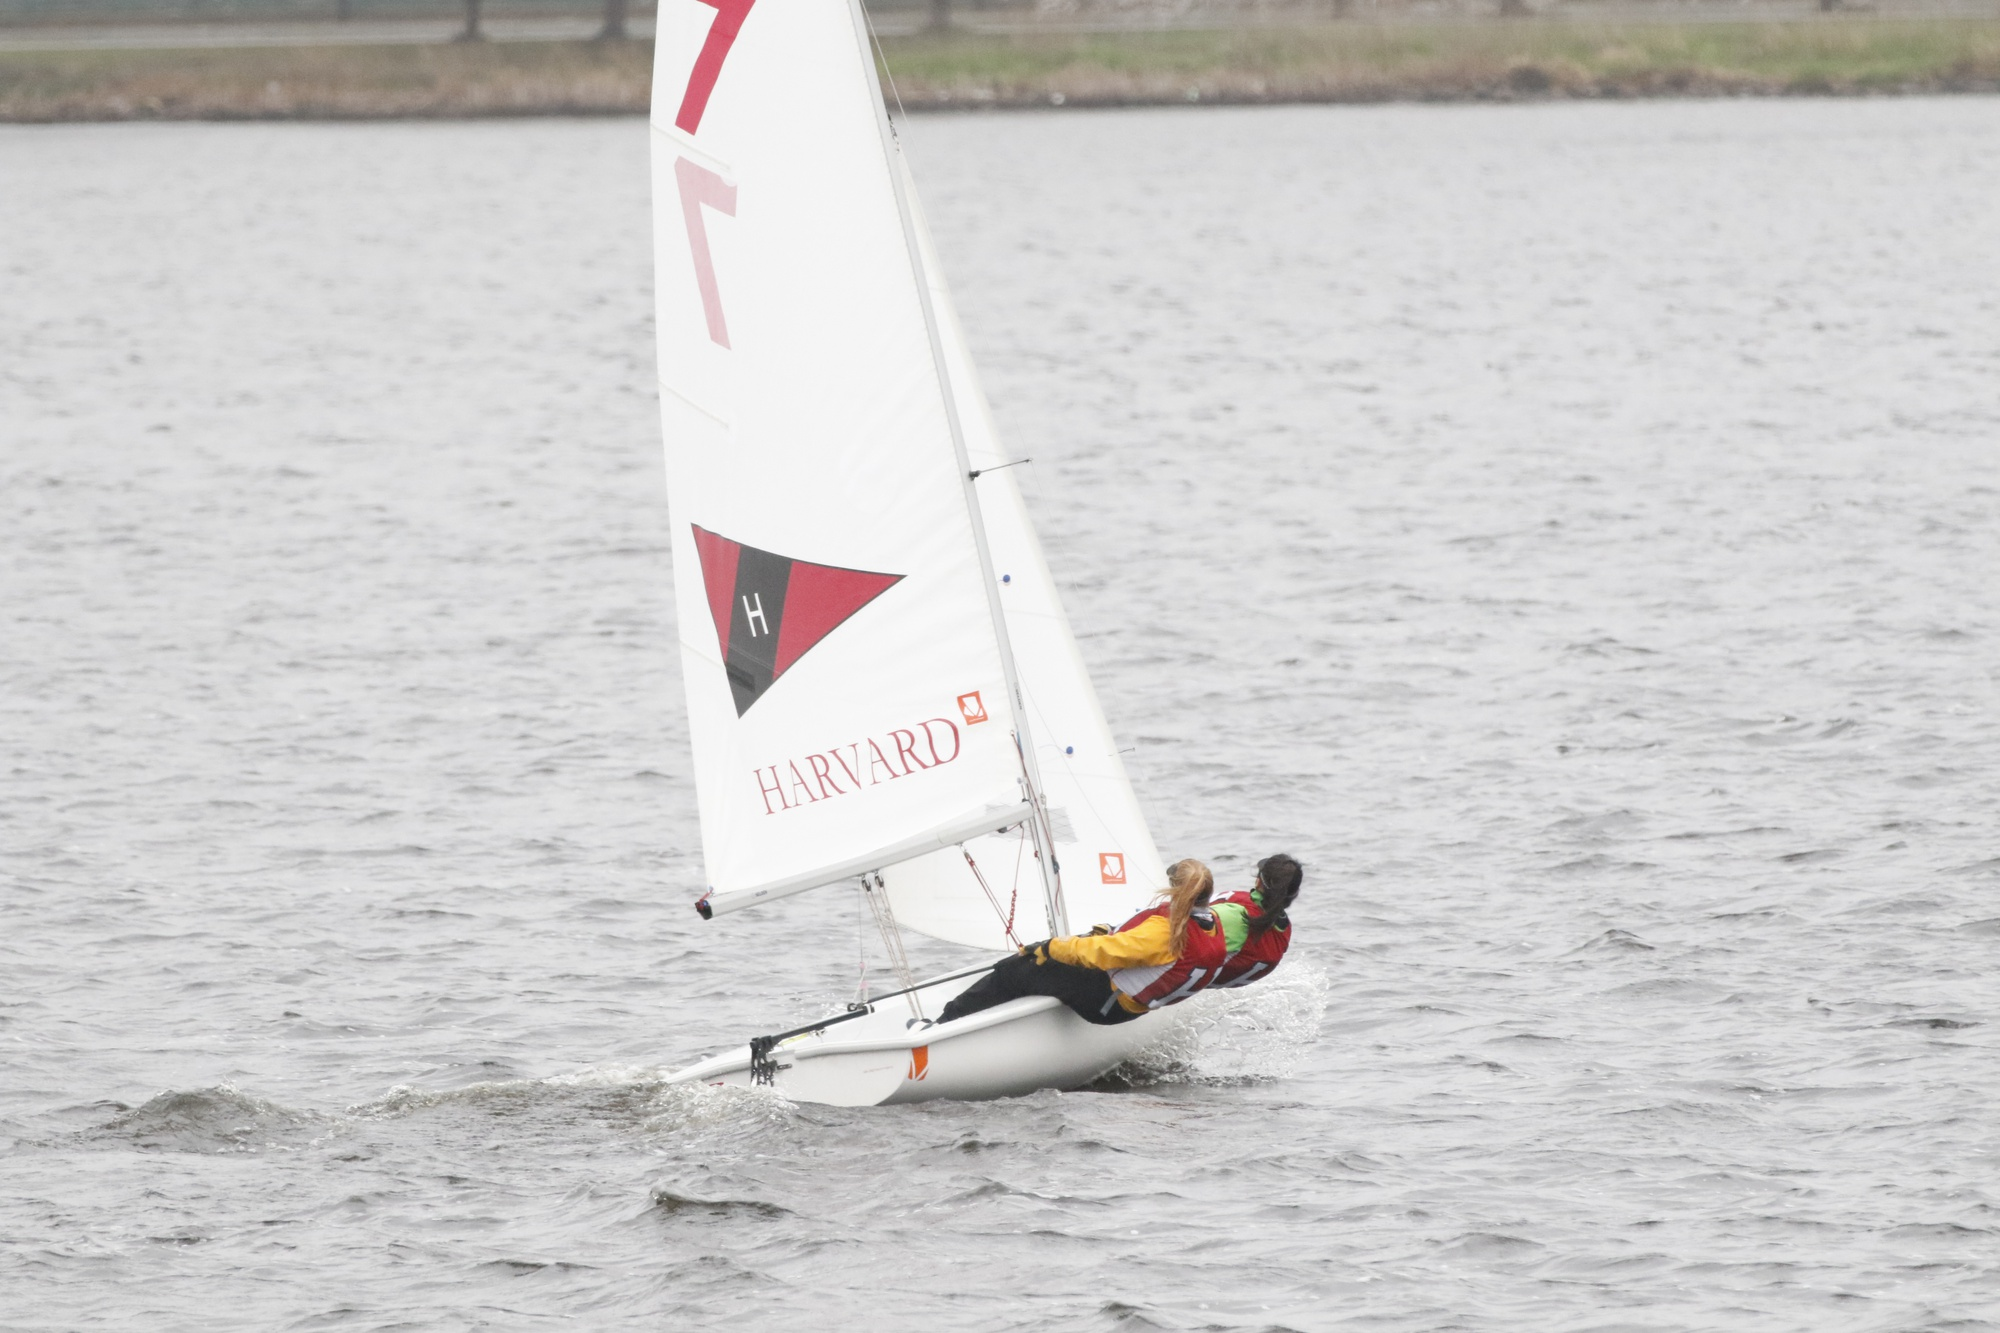 The sailing team competed in three regattas over the weekend: the Women's Showcase, Danmark Trophy, and the Lark Invitational.